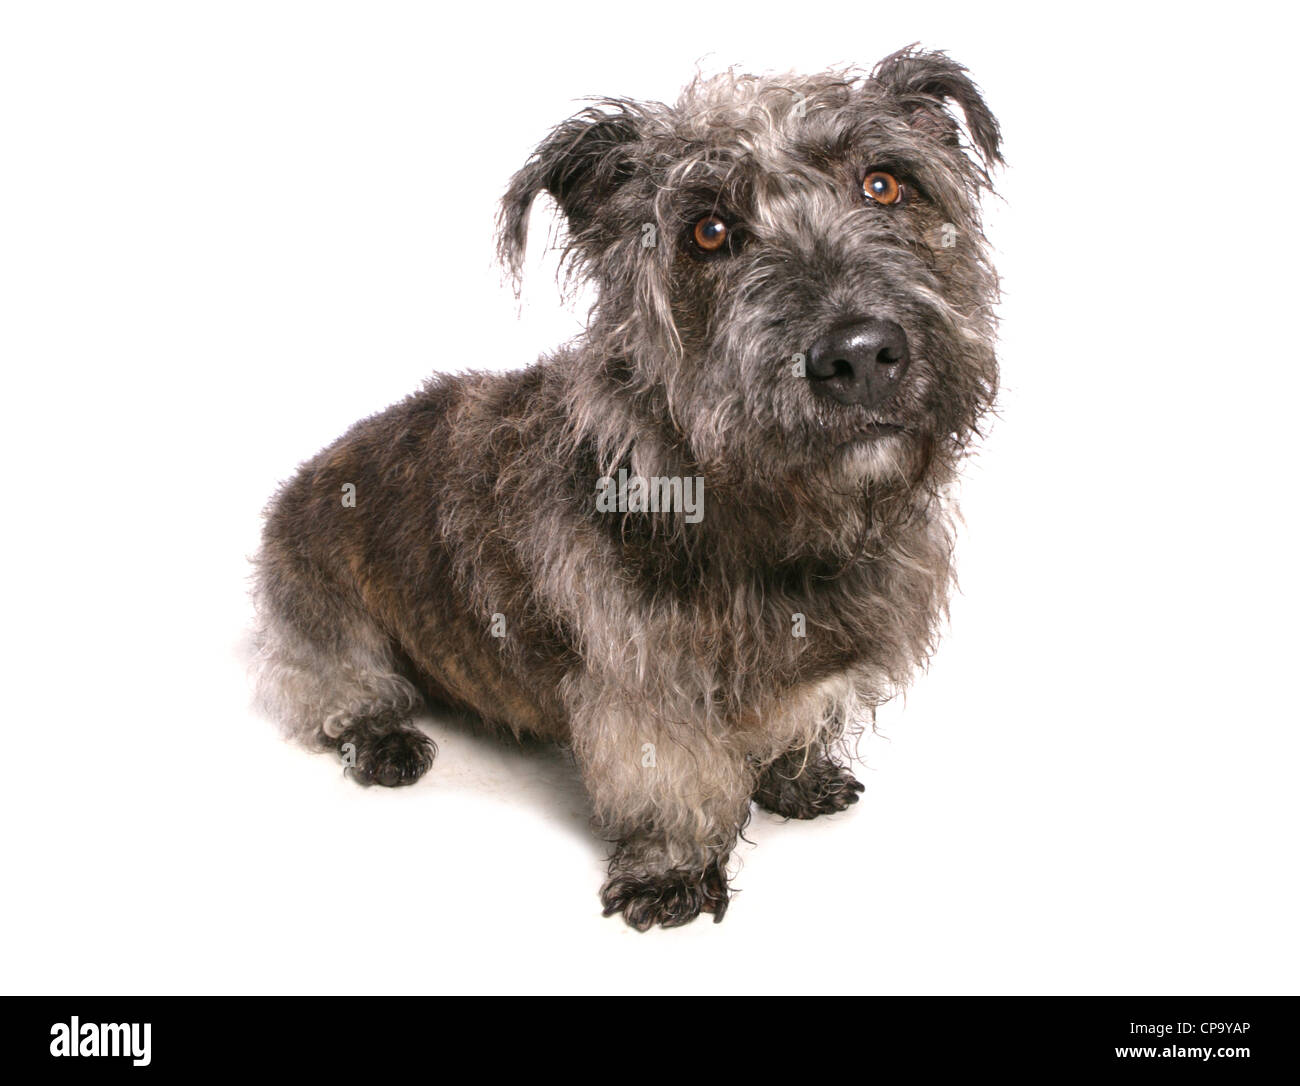 Glen of imaal terrier stock photos glen of imaal terrier stock glen of imaal terrier single adult in a studio uk stock image altavistaventures Images